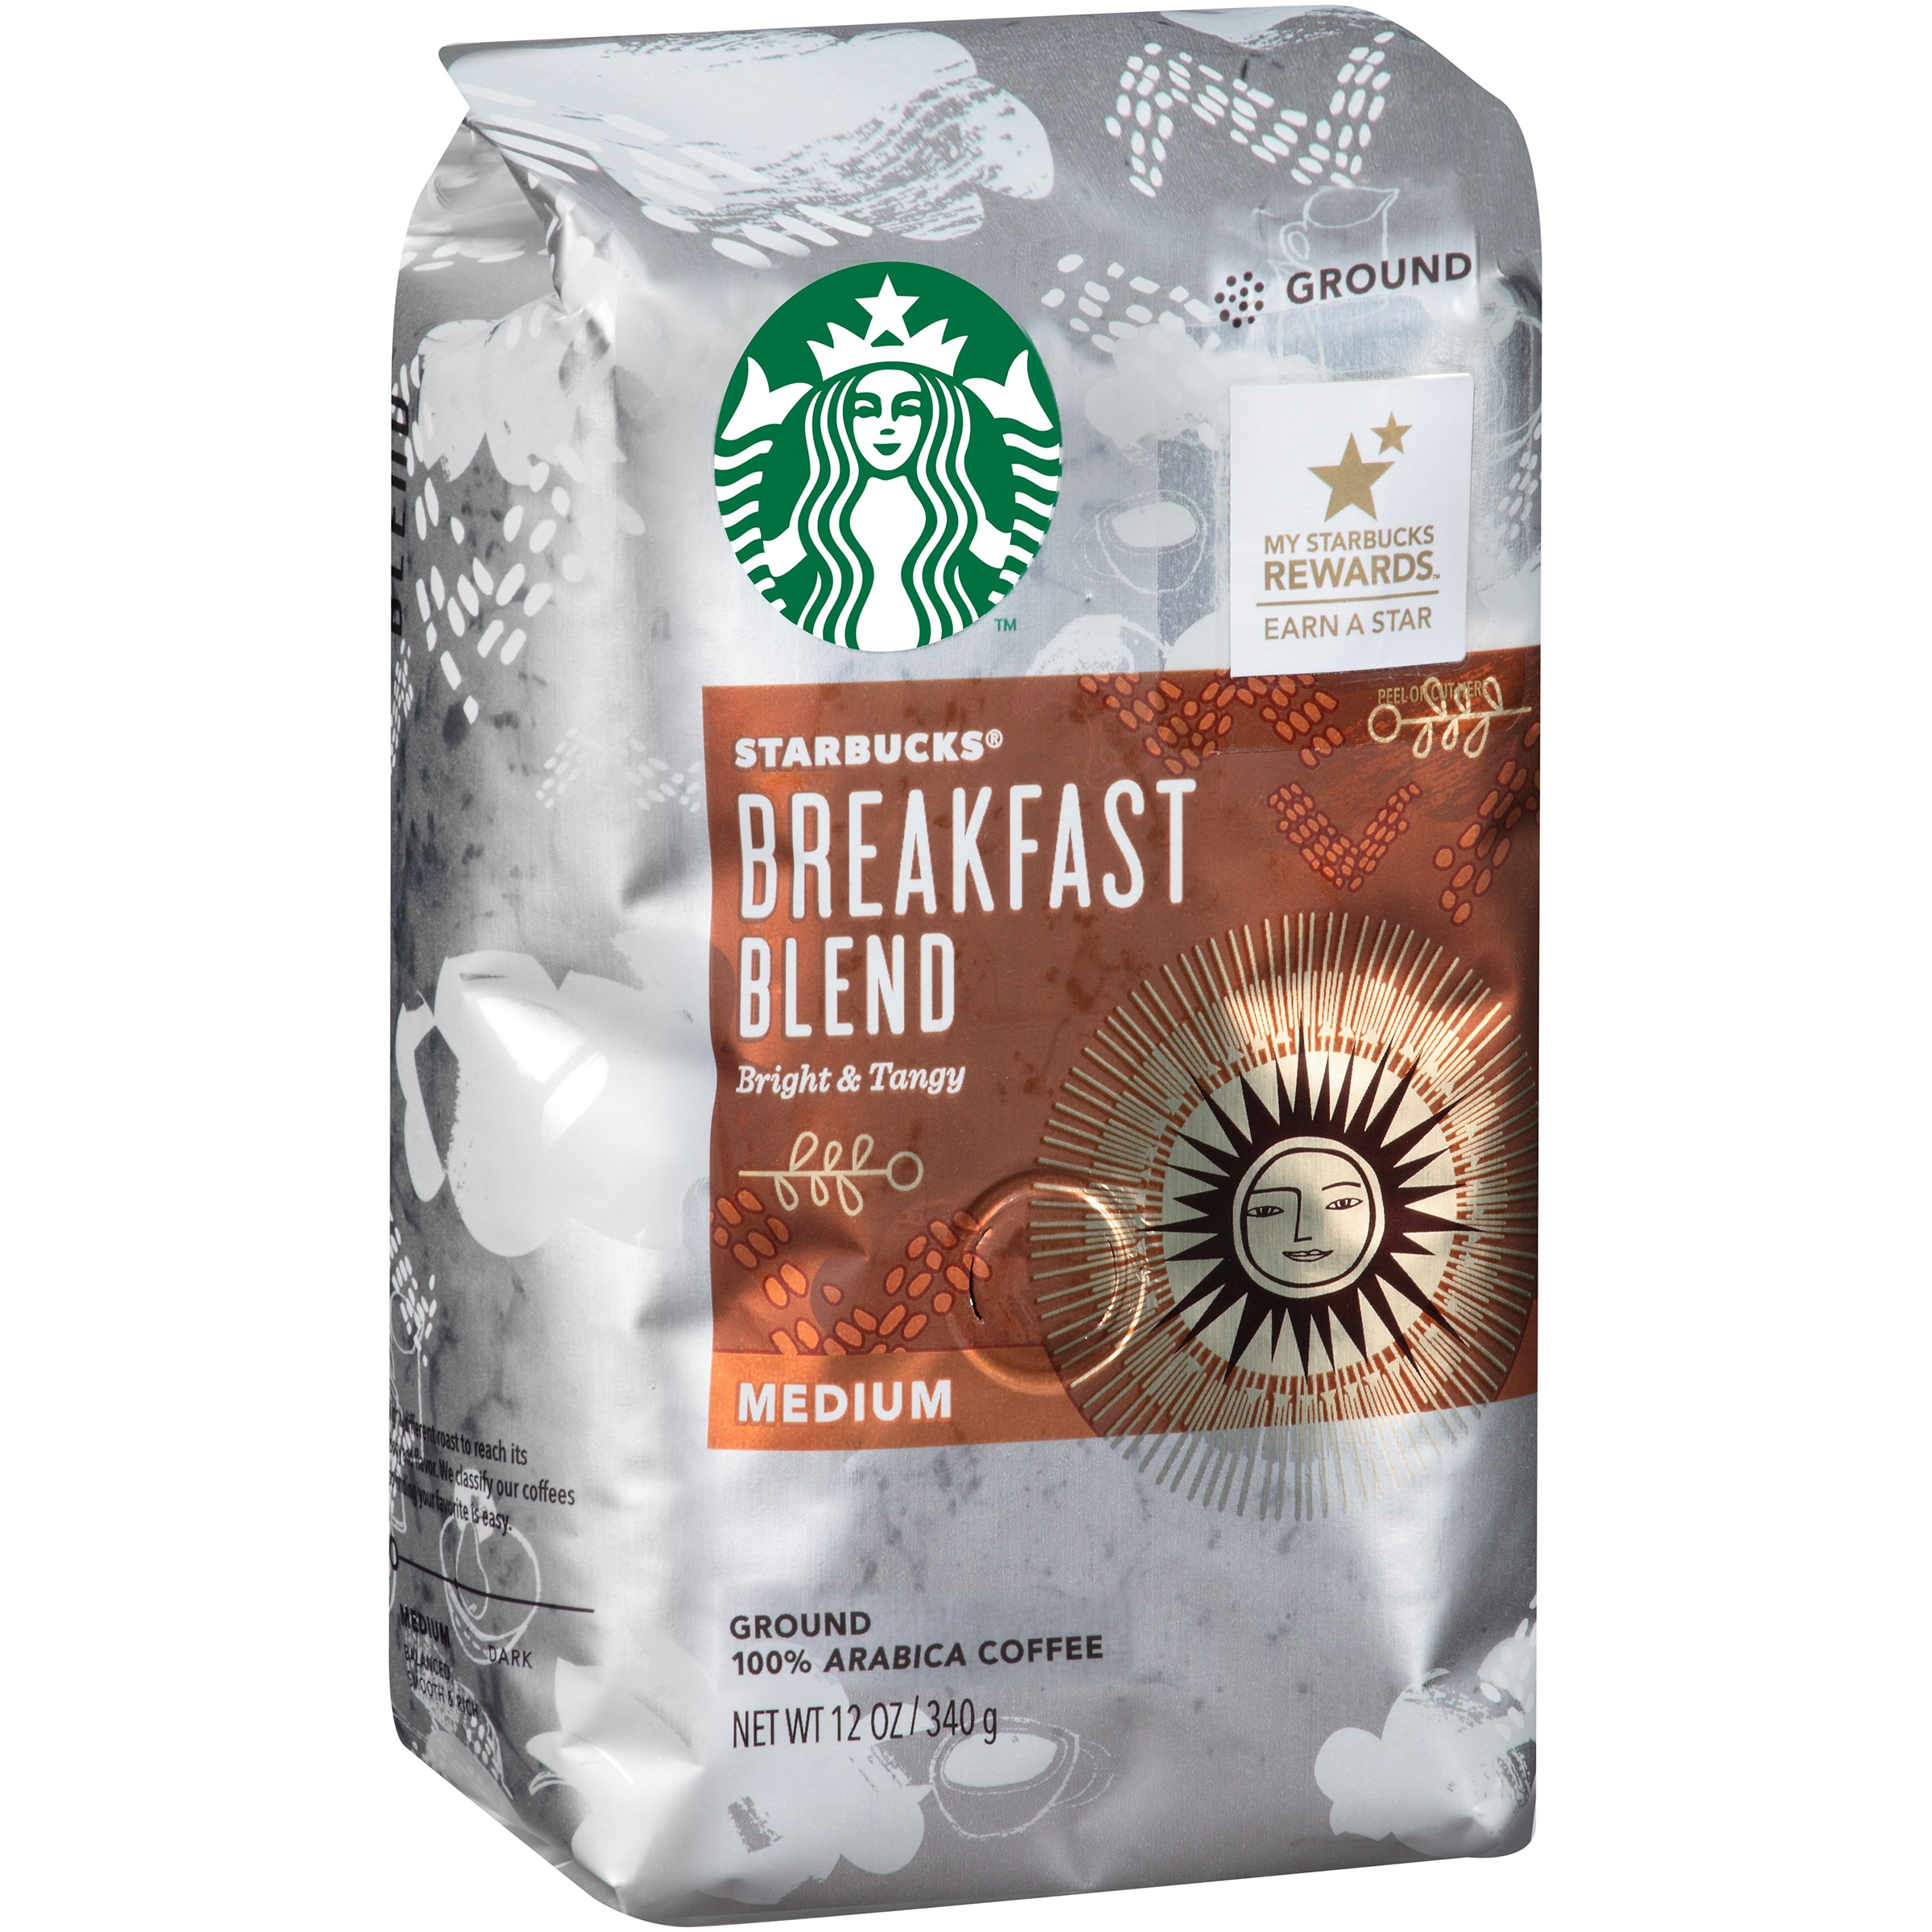 Starbucks Breakfast Blend Ground Coffee, 12 oz by Kraft Foods Beverages